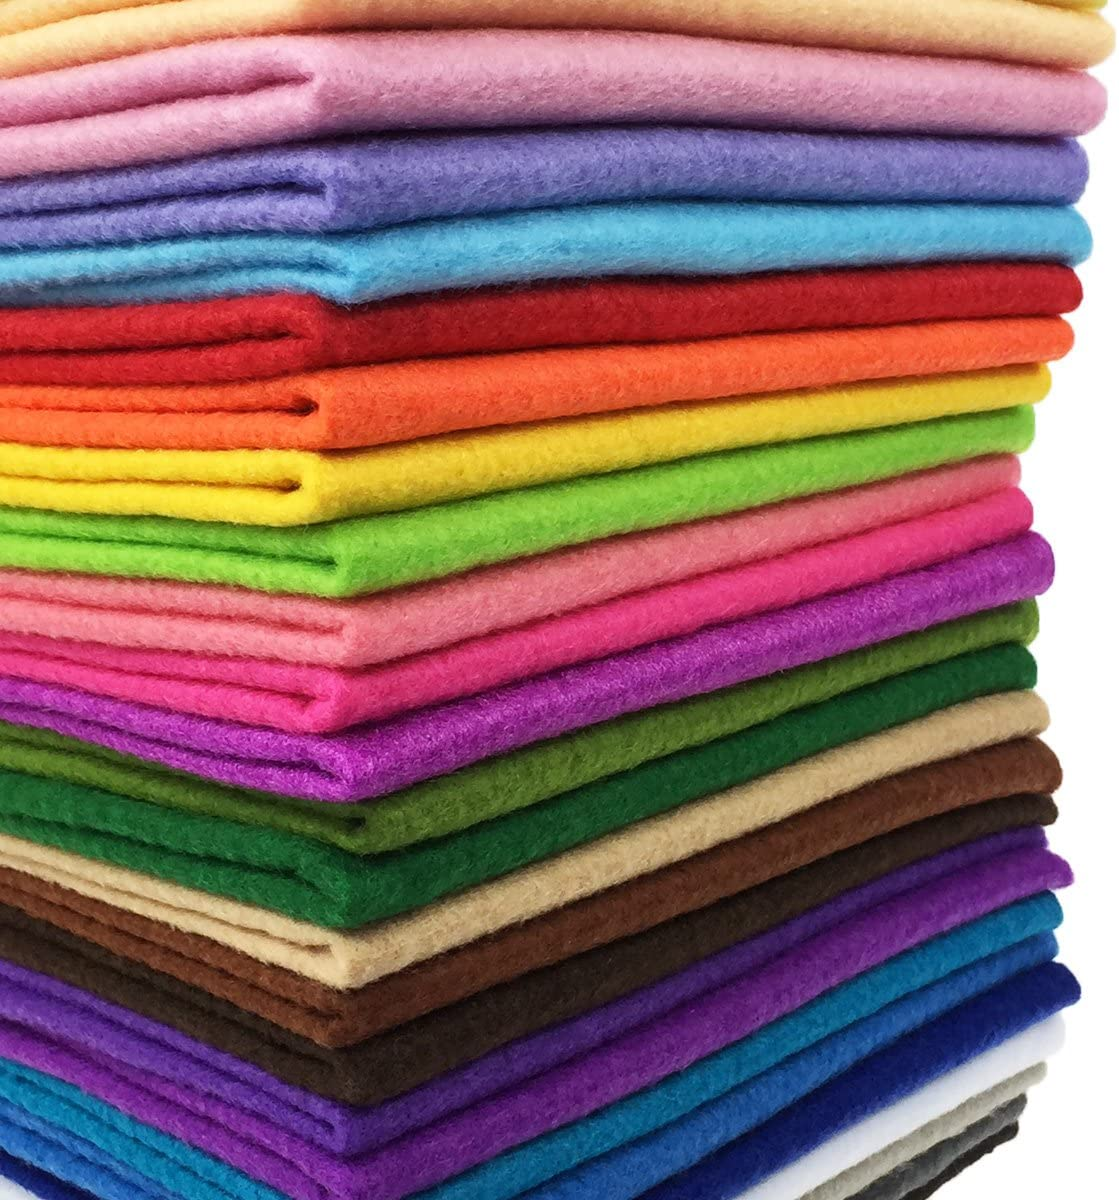 28pcs Thick 1.4mm Soft Felt Sheet Max 73% SEAL limited product OFF Color Fabric Pac Assorted